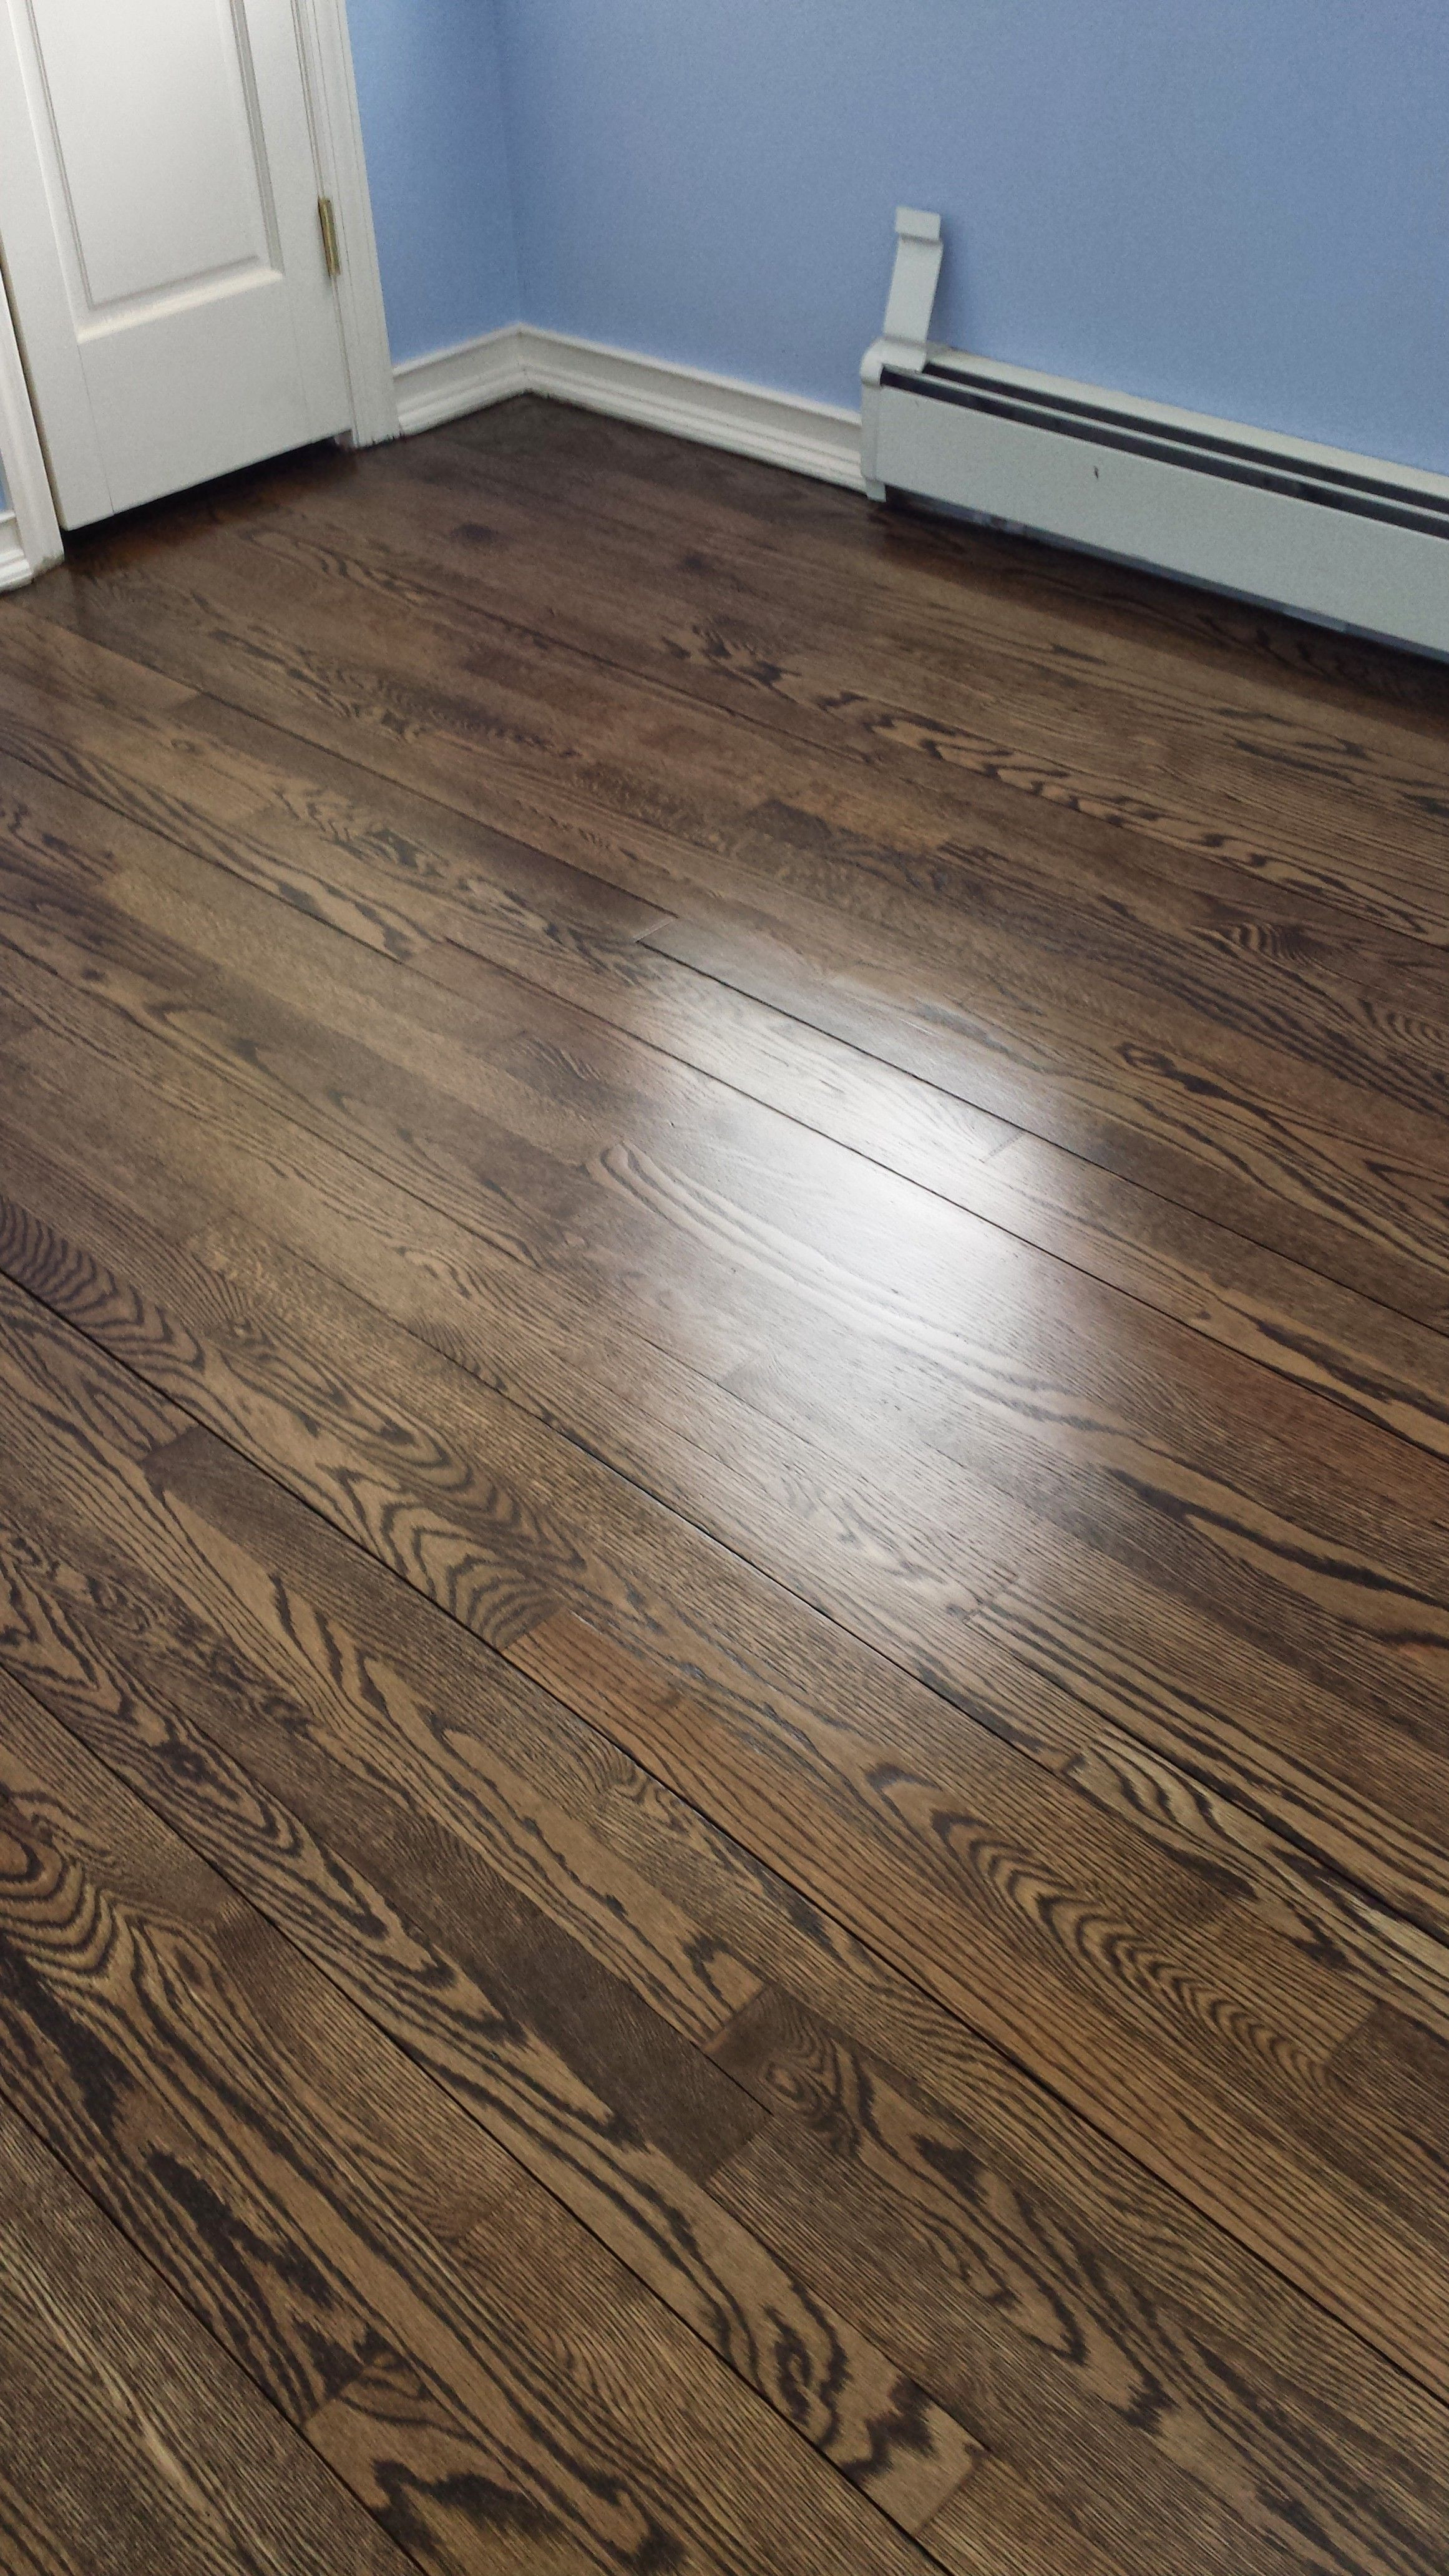 how to refinish maple hardwood floors of diy hardwood floor cleaner great methods to use for refinishing regarding diy hardwood floor cleaner great methods to use for refinishing hardwood floors